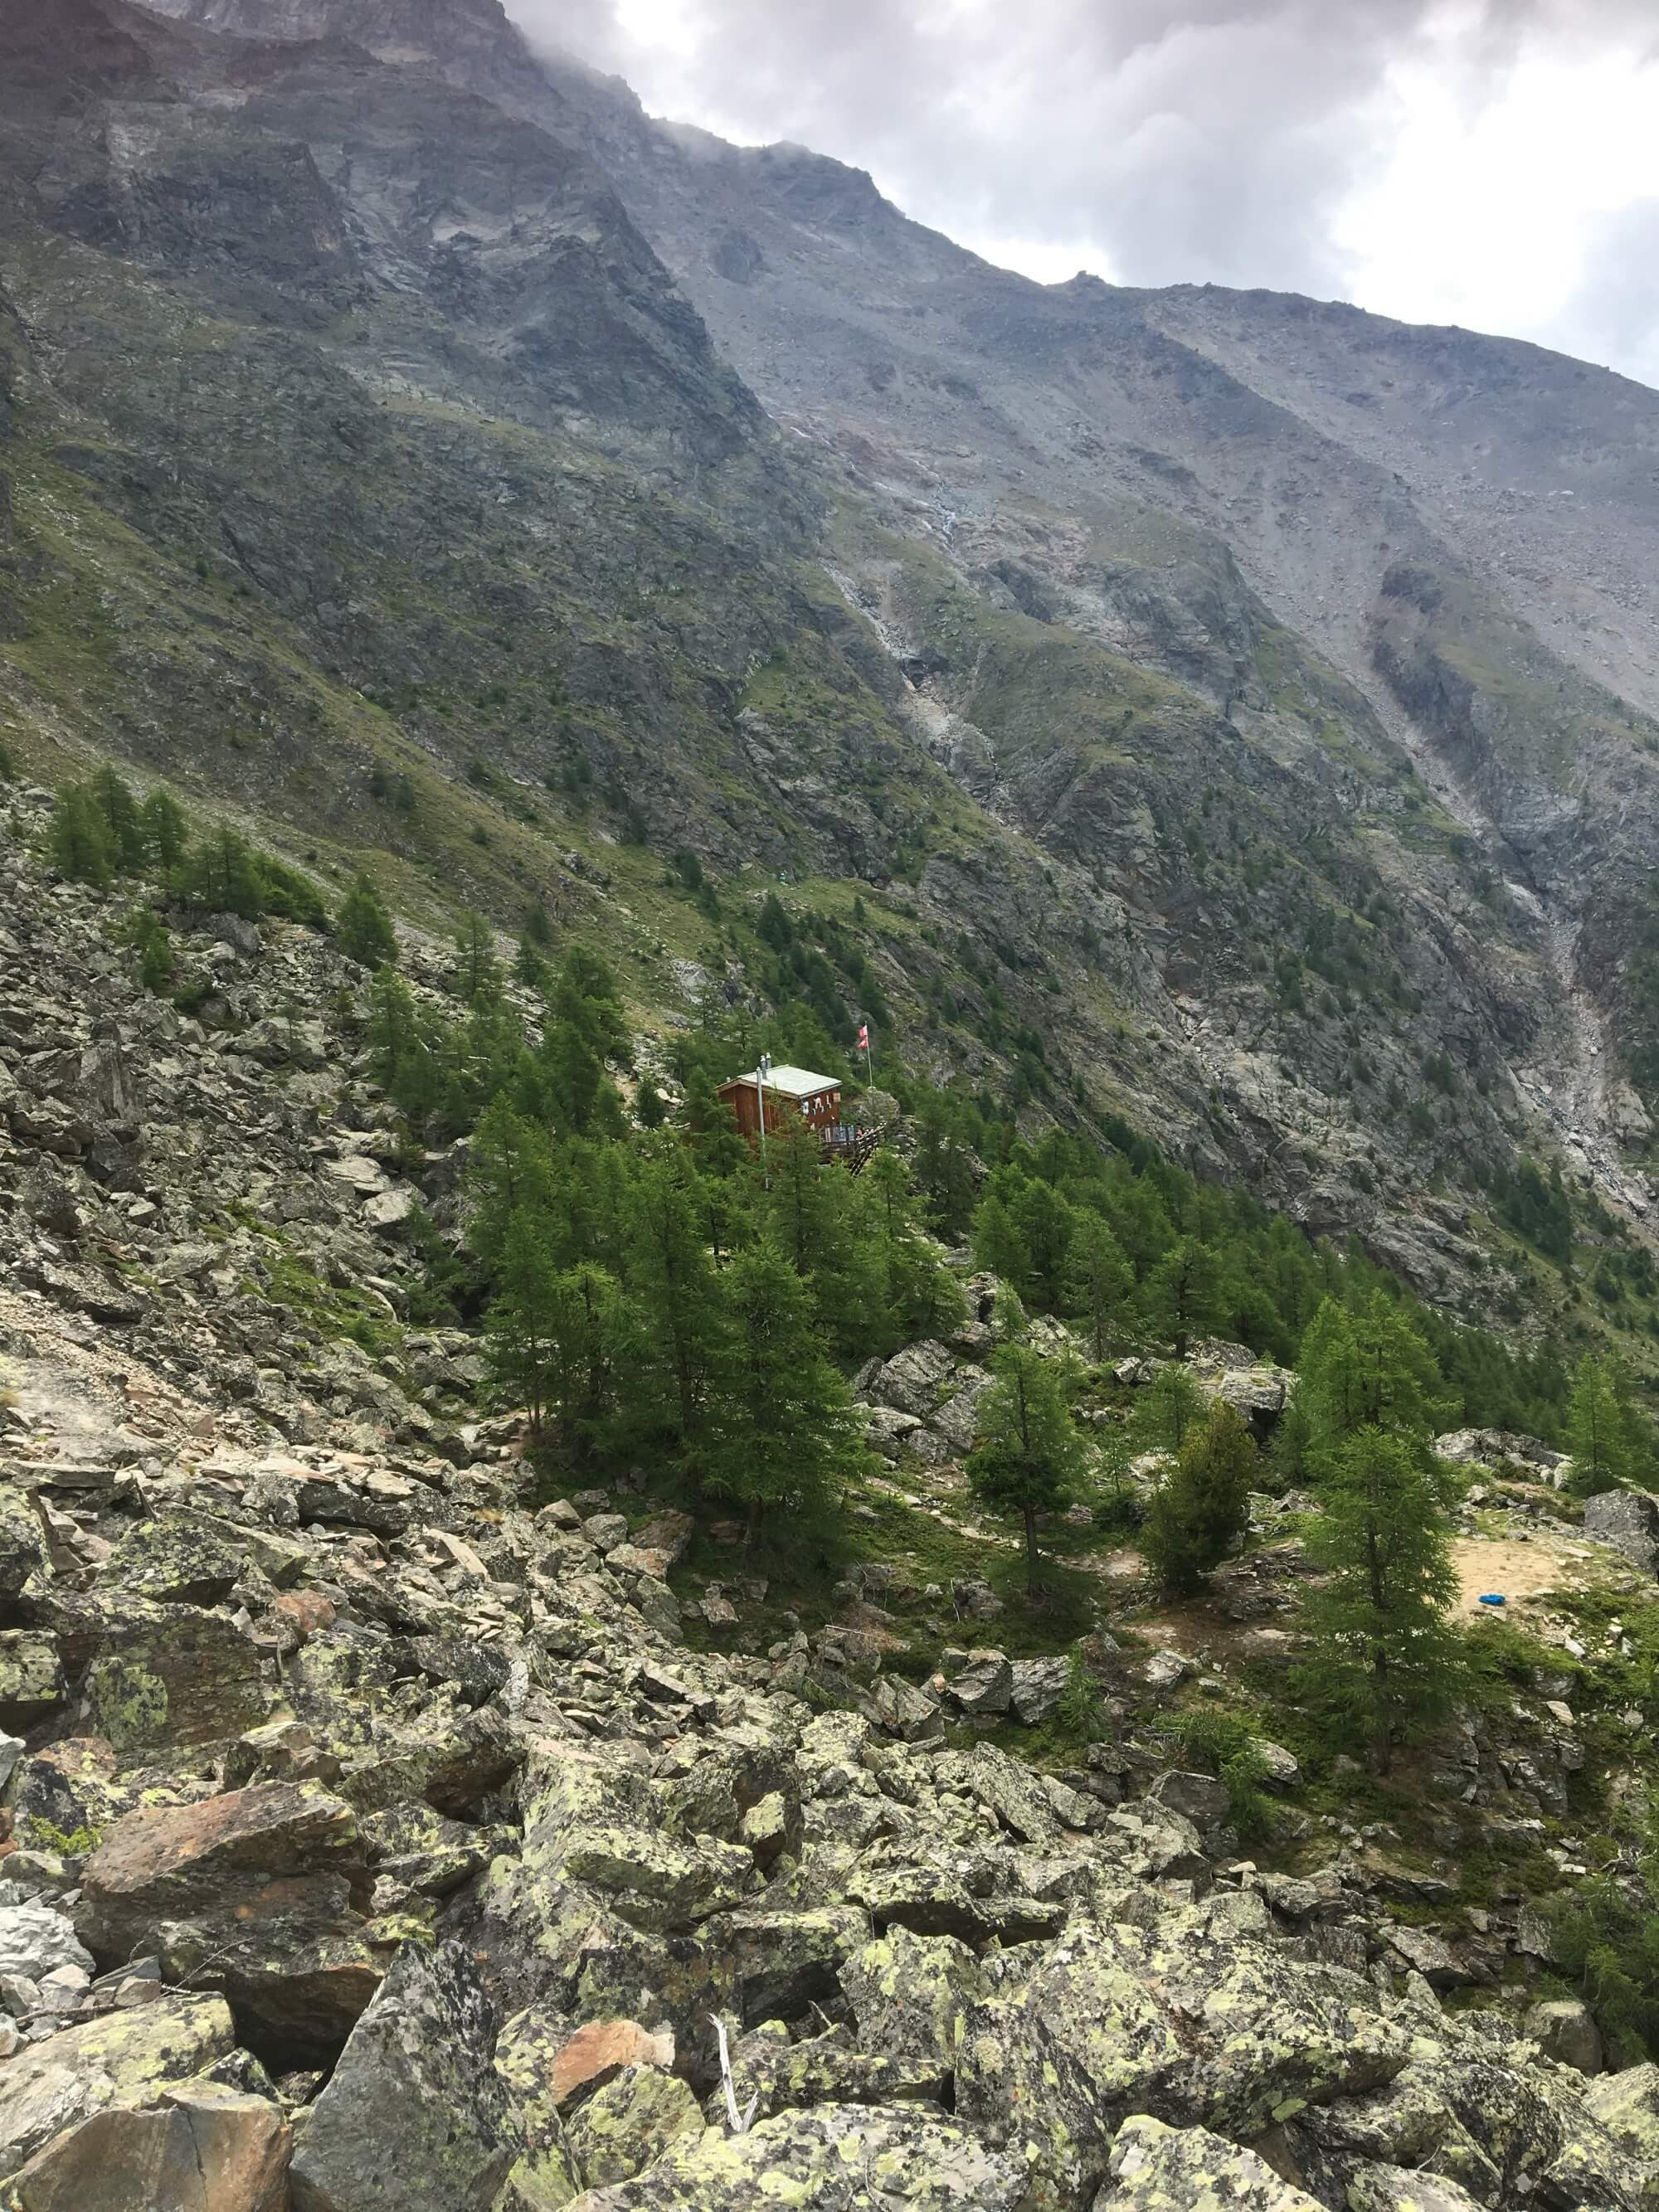 Europahütte:  A favourite location for hikers to spend the night while completing the Europaweg trail